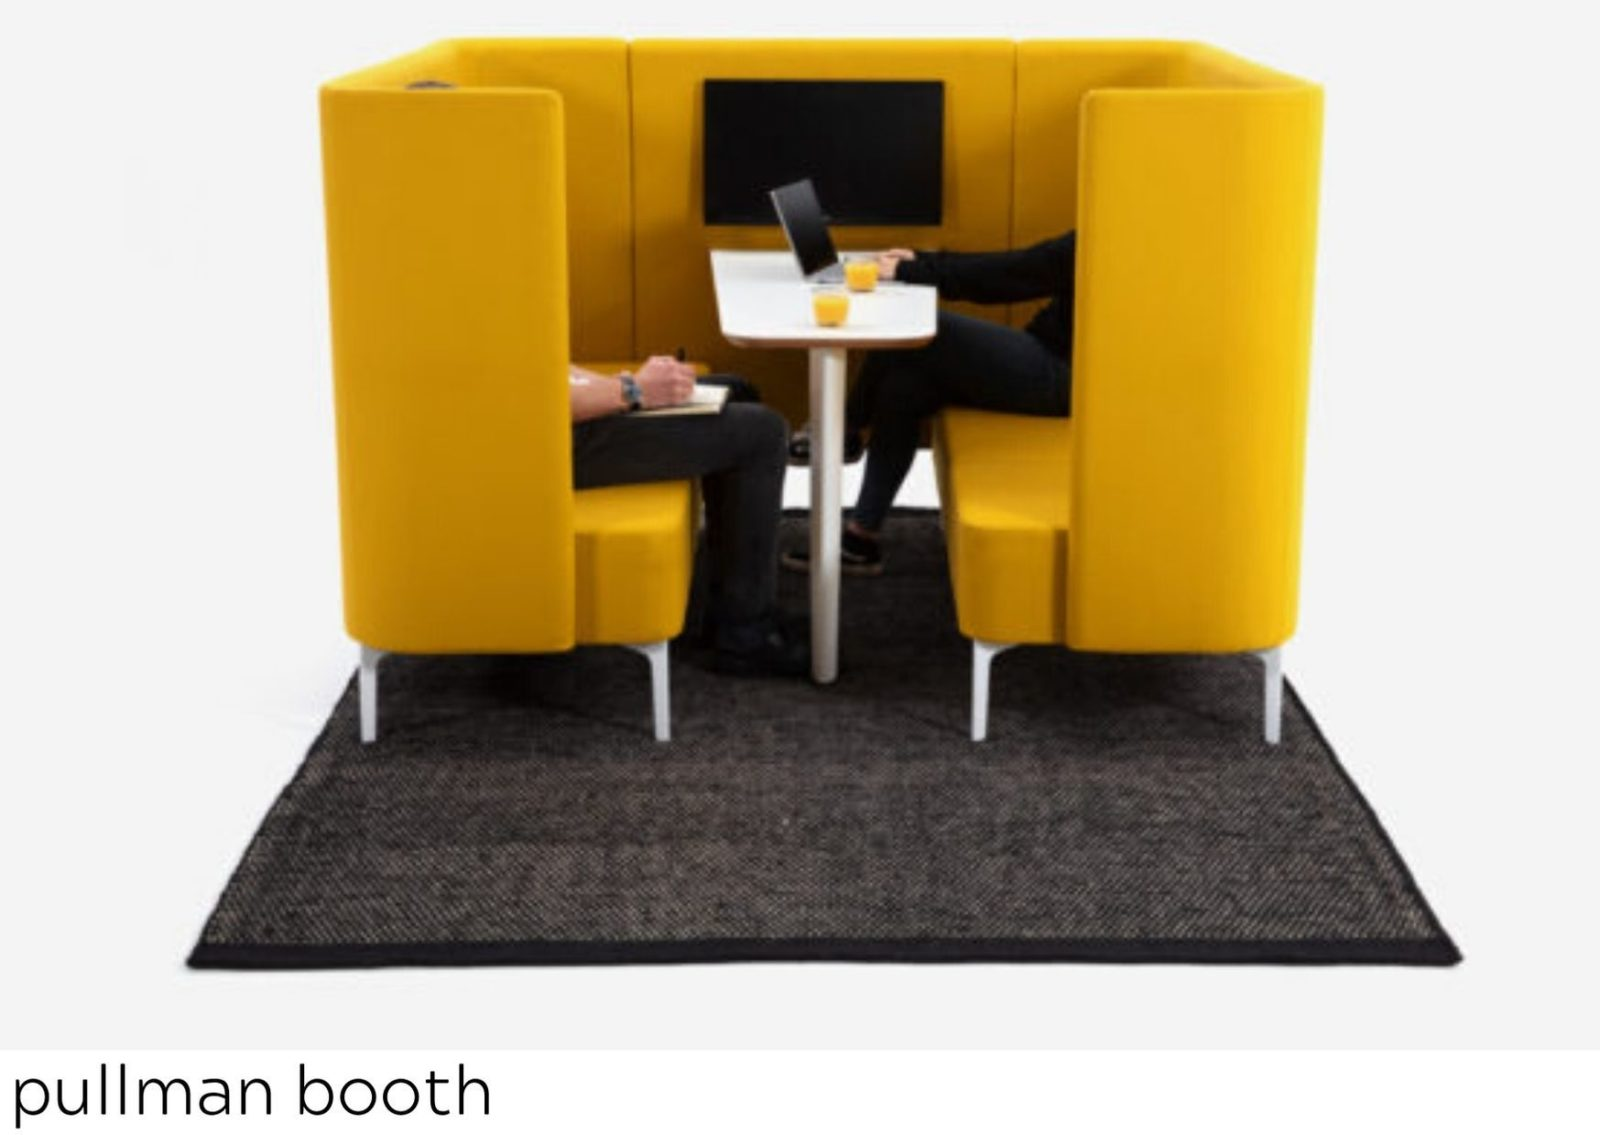 Pullman yellow booth with TV